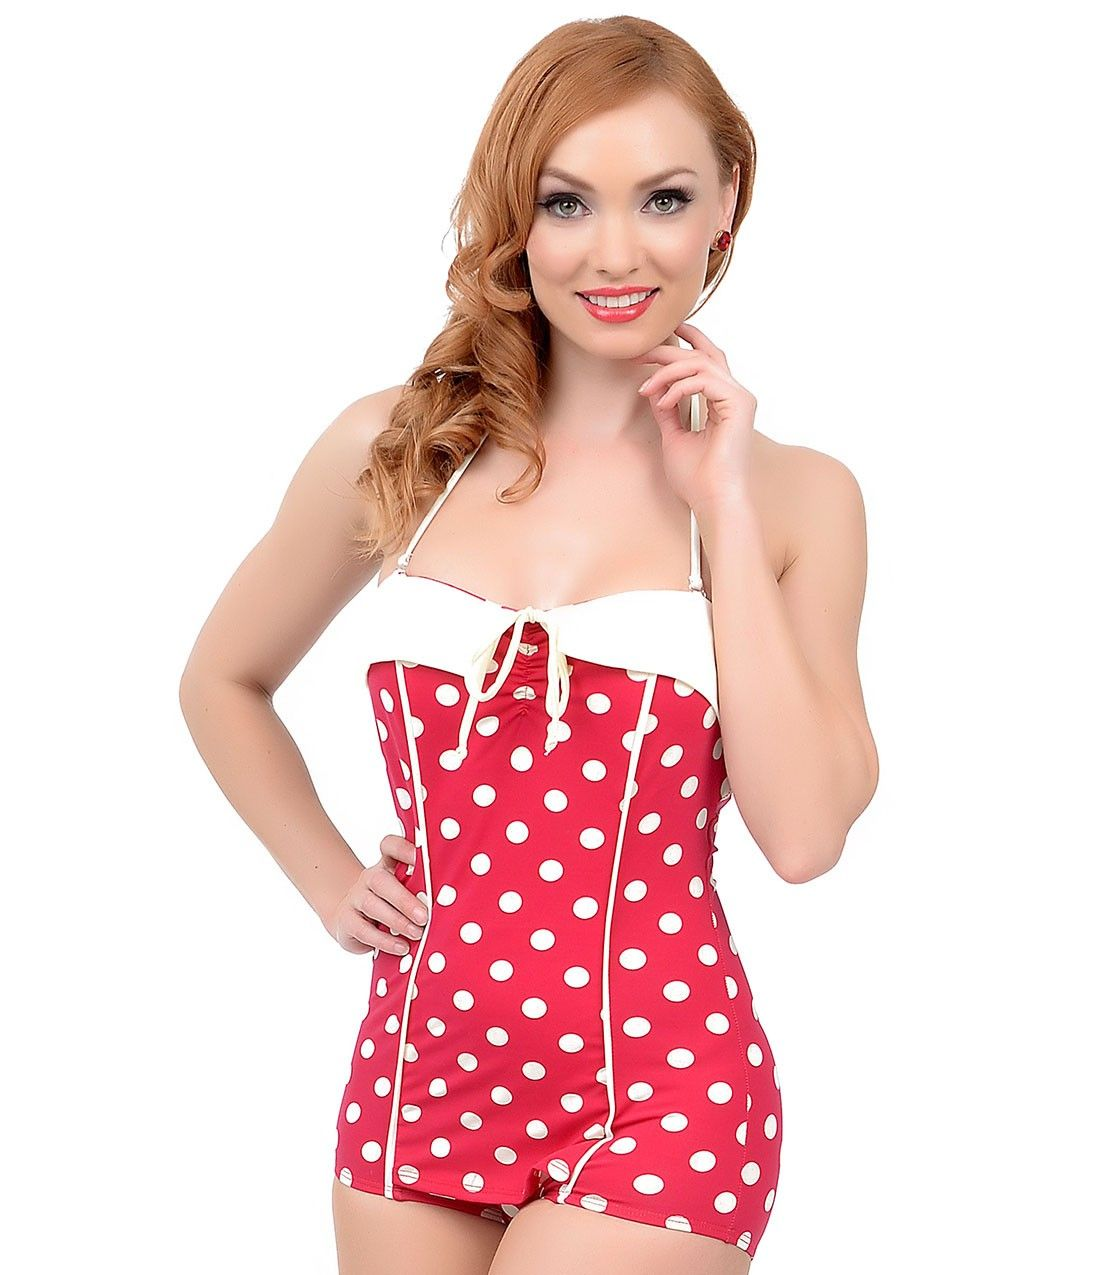 4ef788b173b38 Vintage 1950s Style Pin-Up Red   White Dot Bandeau One Piece Swimsuit at Unique  Vintage  retroinspired  bettiepage  bettiepageclothing ...